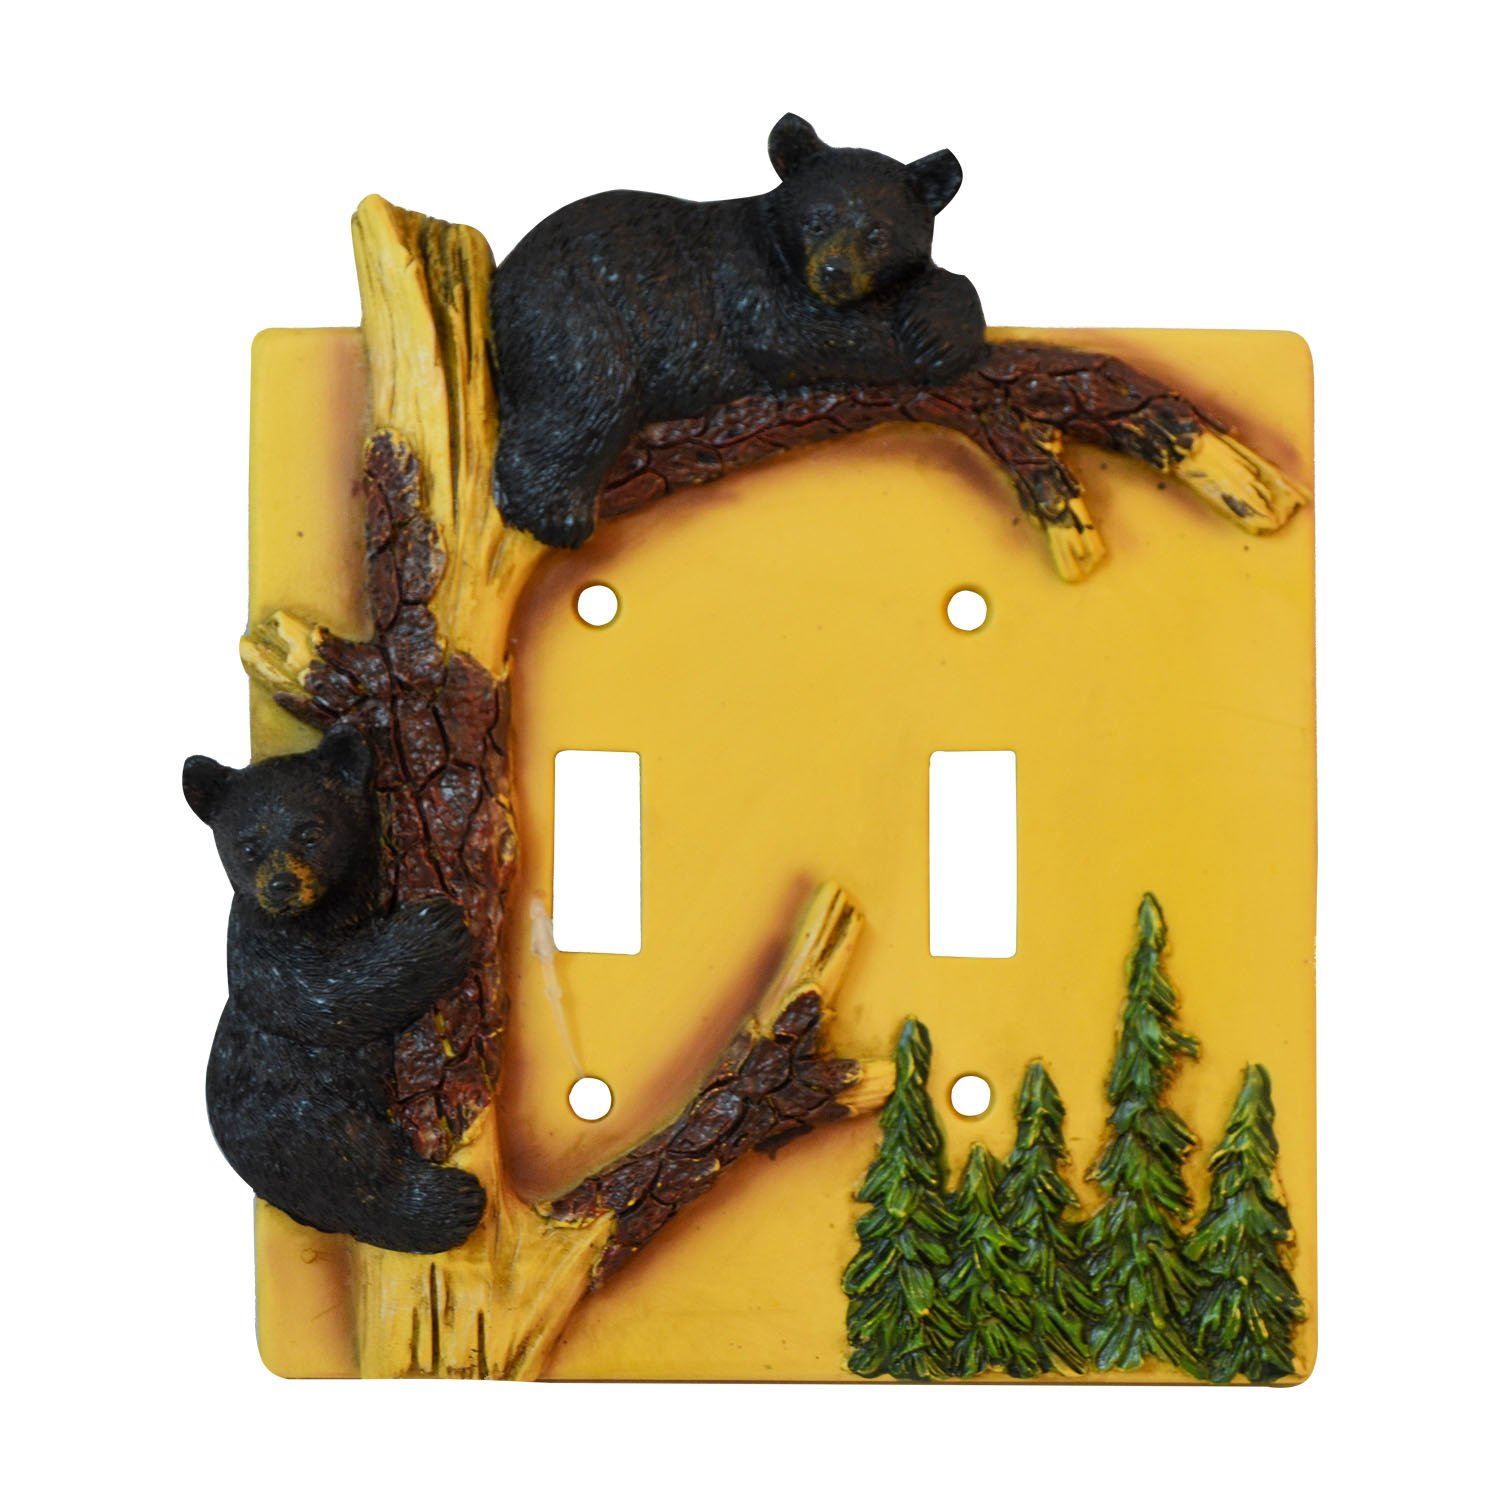 Black Bear Double Switch Cover Home Decor - Wildlife Bear Climbing Tree Rustic Hunting with Wall Mounting Screws